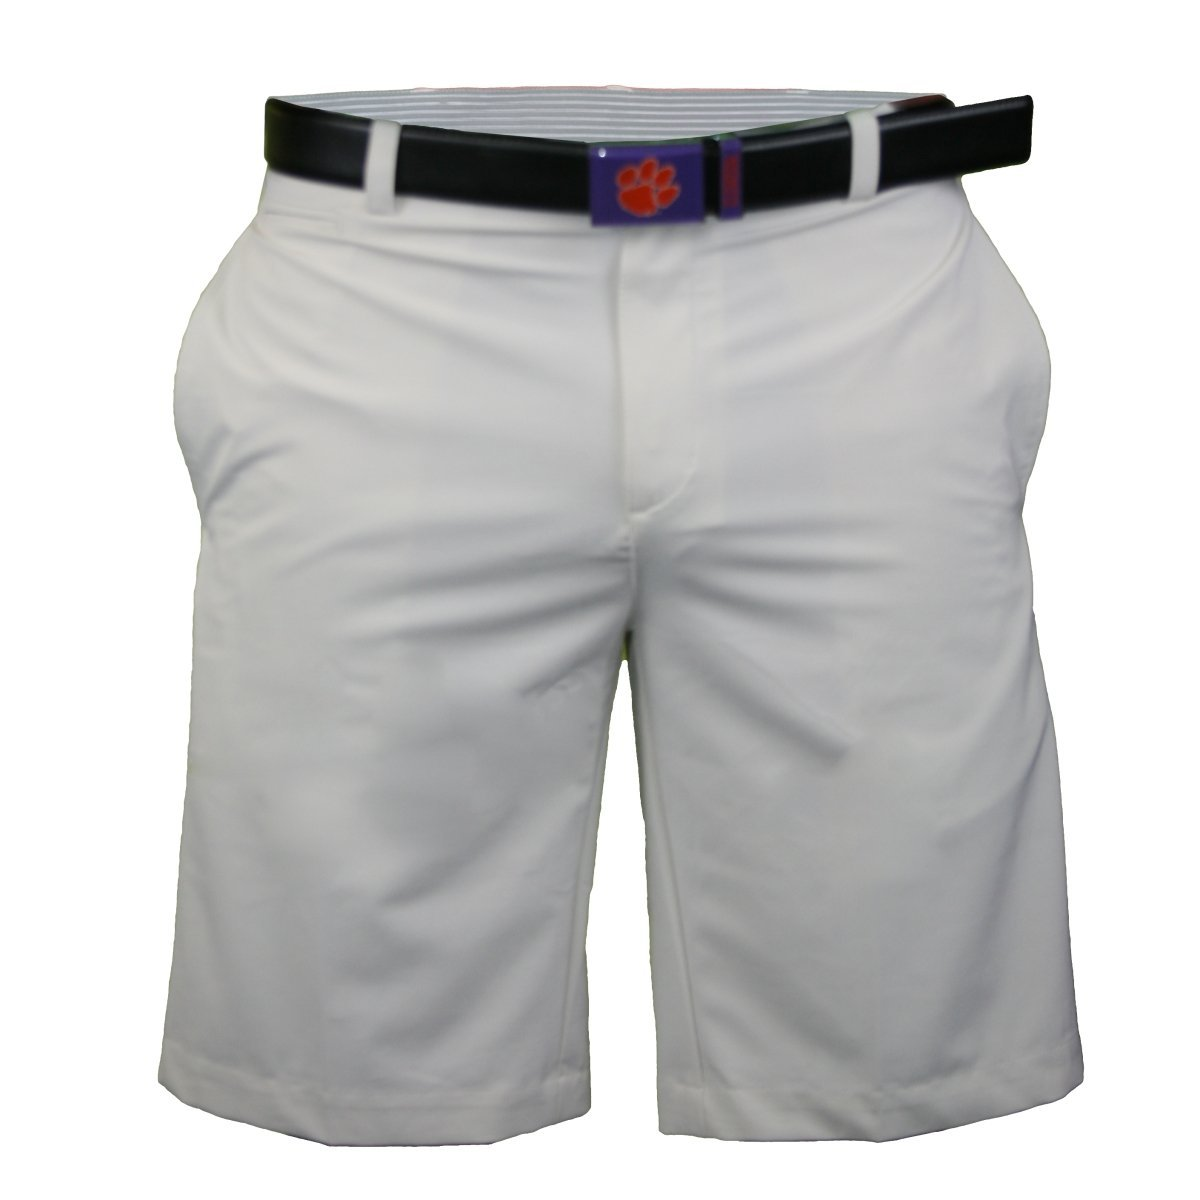 Columbia Mens 2-color Solid Marker Short - Mr. Knickerbocker